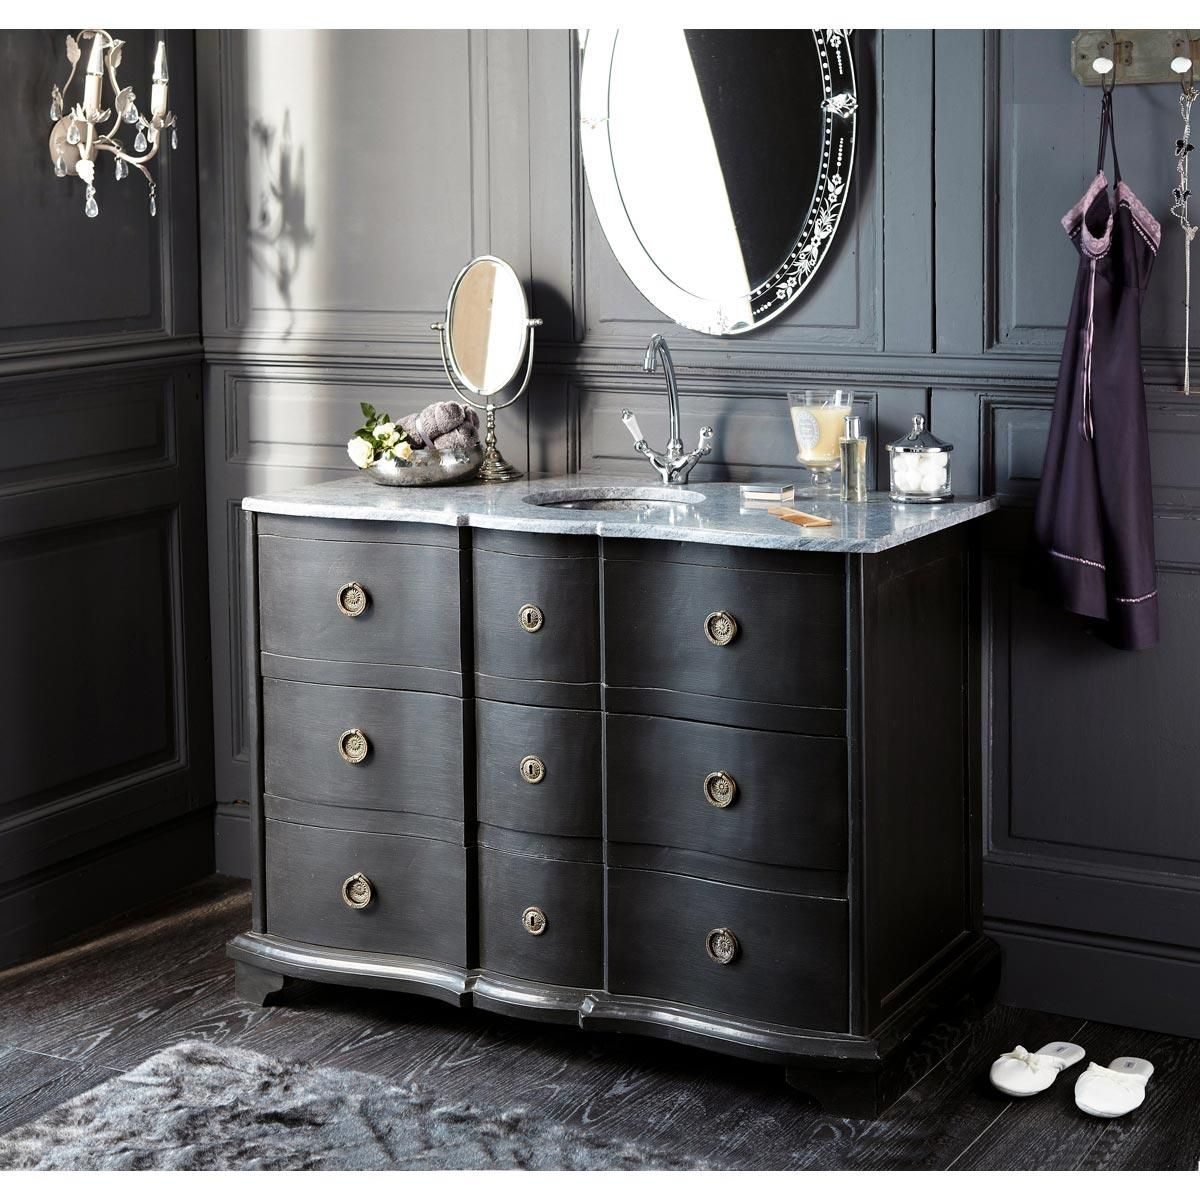 meuble vasque de salle de bain noir meuble vasque. Black Bedroom Furniture Sets. Home Design Ideas